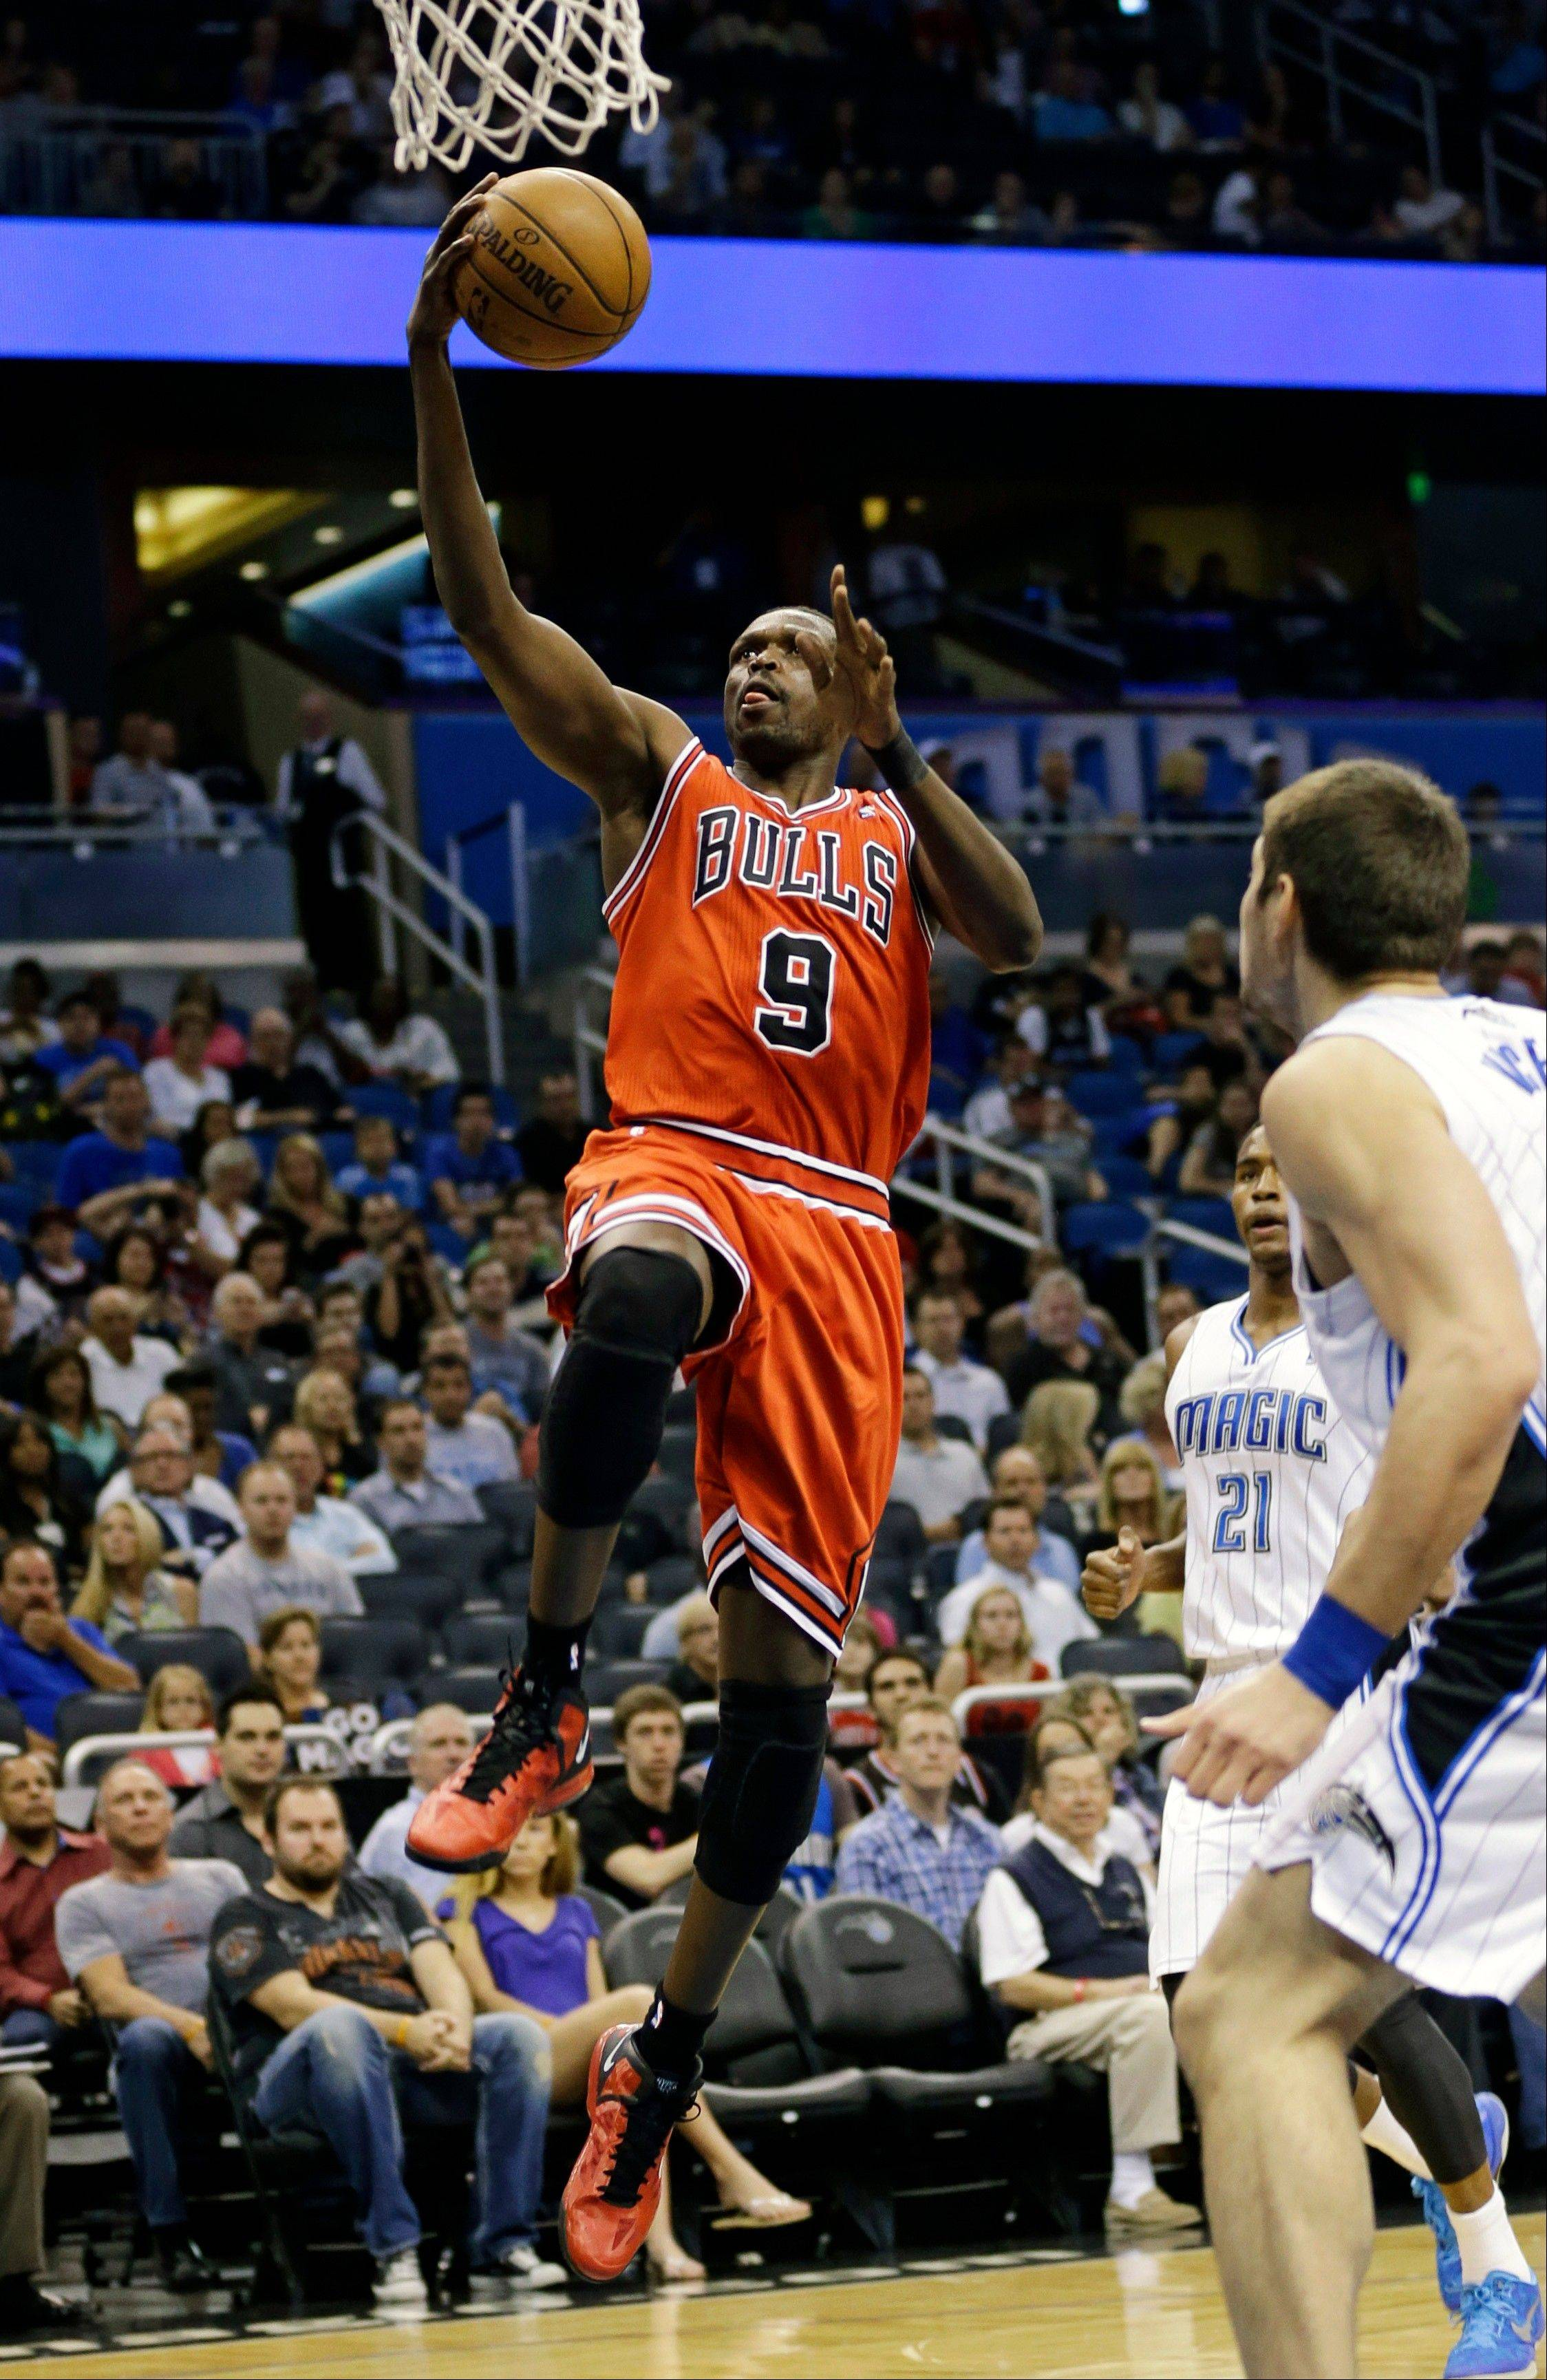 The Bulls� Luol Deng (9) drives to the basket past Orlando Magic�s Maurice Harkless (21) and Nikola Vucevic, right, of Montenegro, during the first half of the game Monday in Orlando.